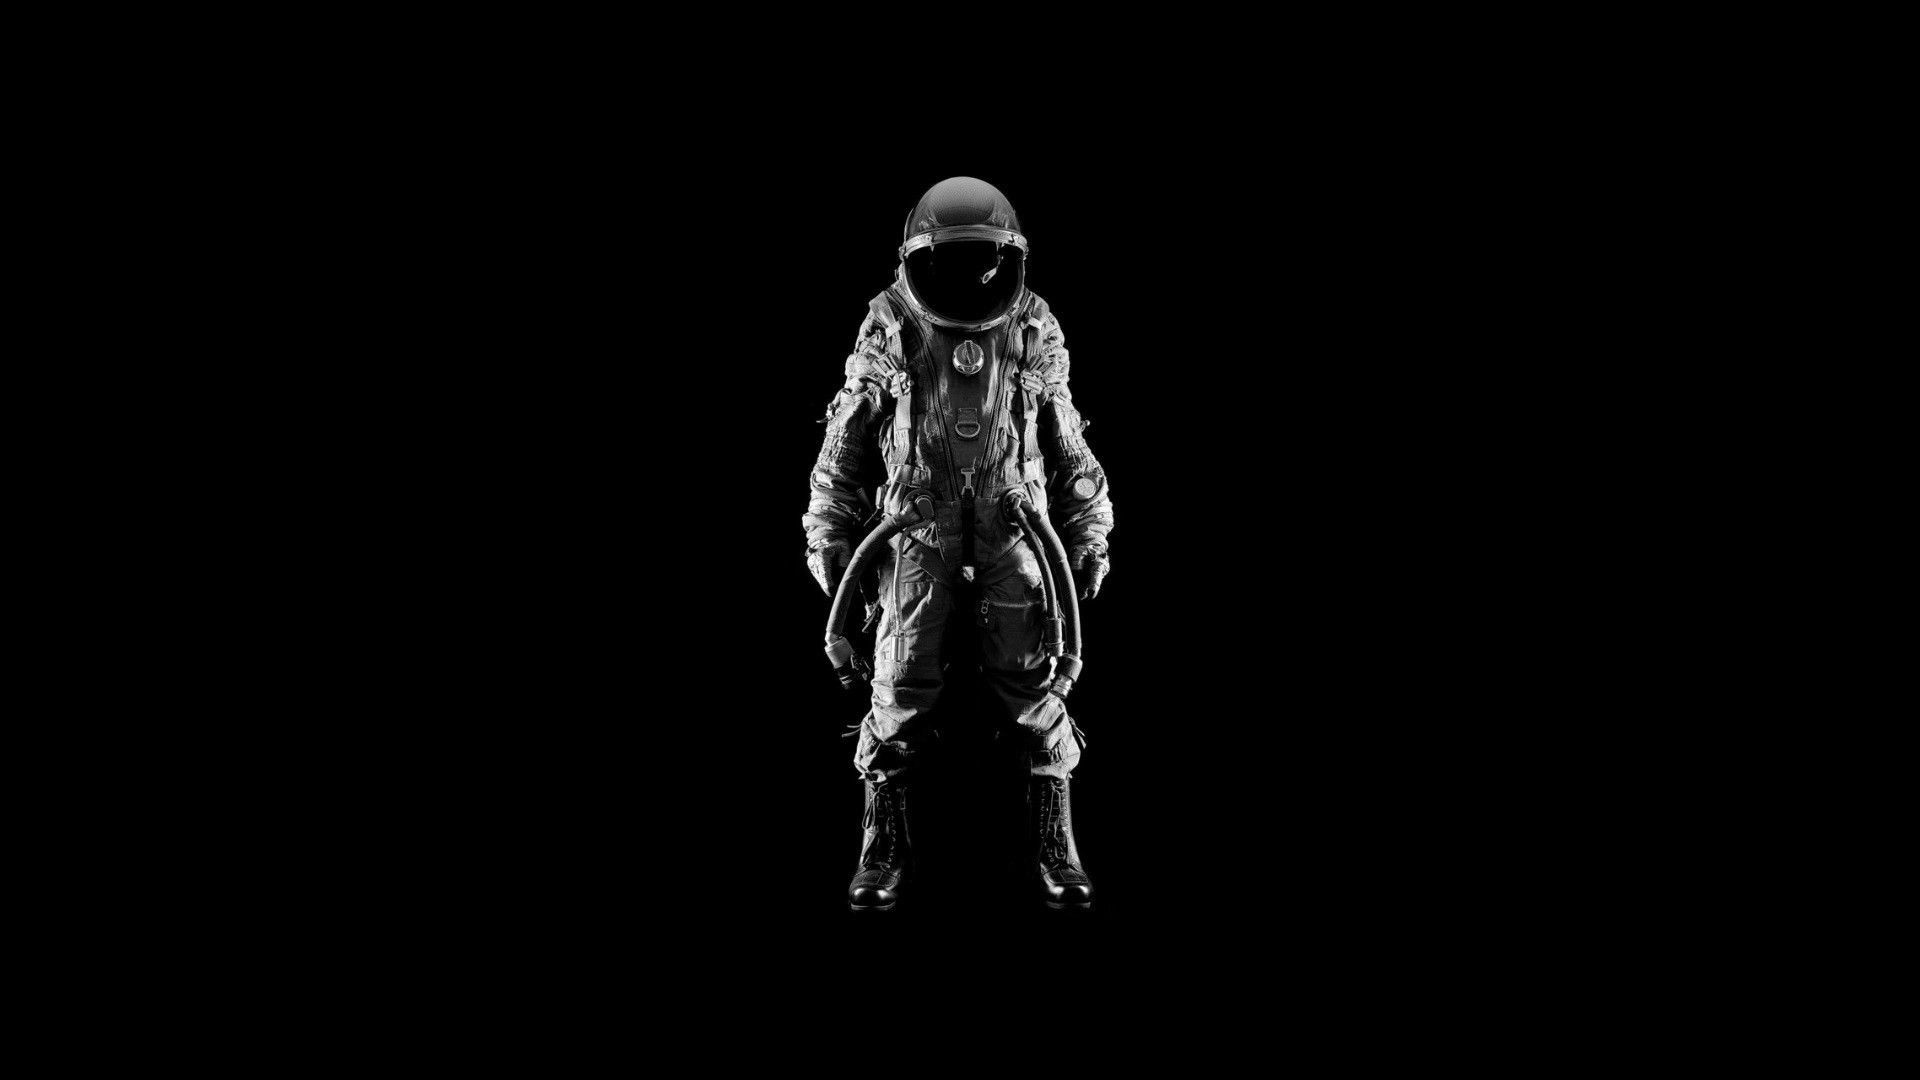 Astronaut Wallpapers Hd Wallpaper Collections 4kwallpaper Wiki